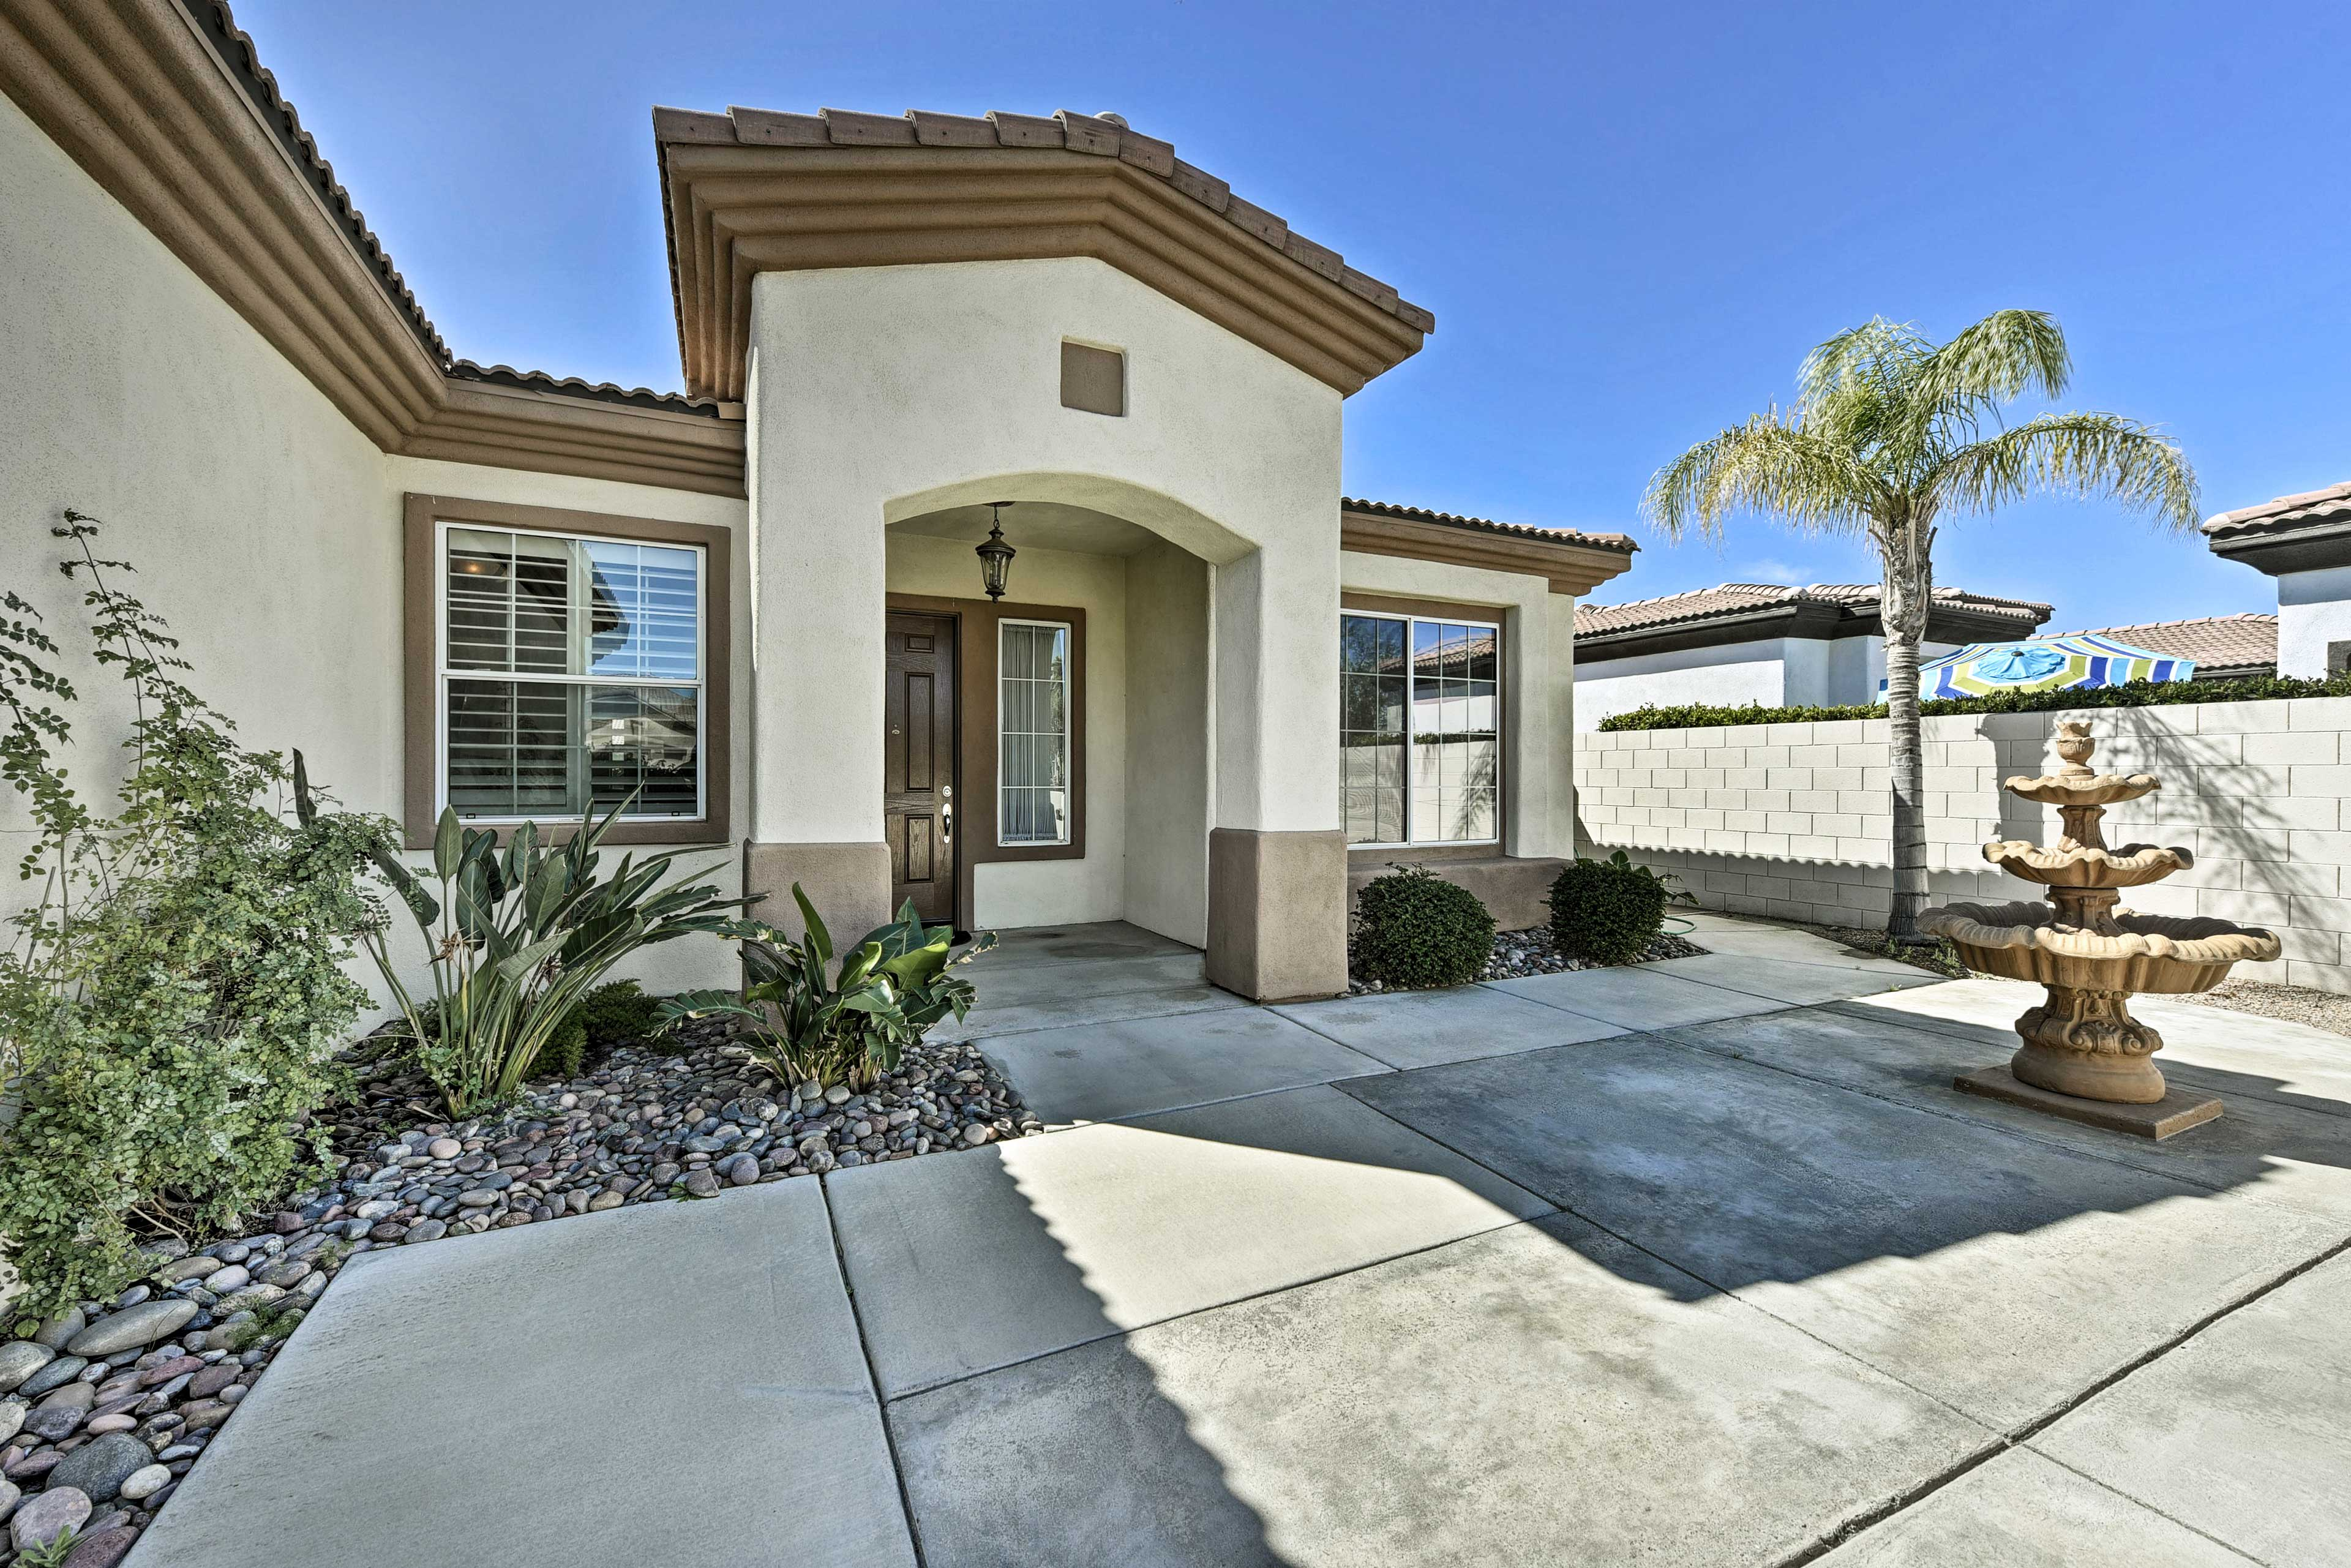 This home is just 30 minutes from Joshua Tree National Park!